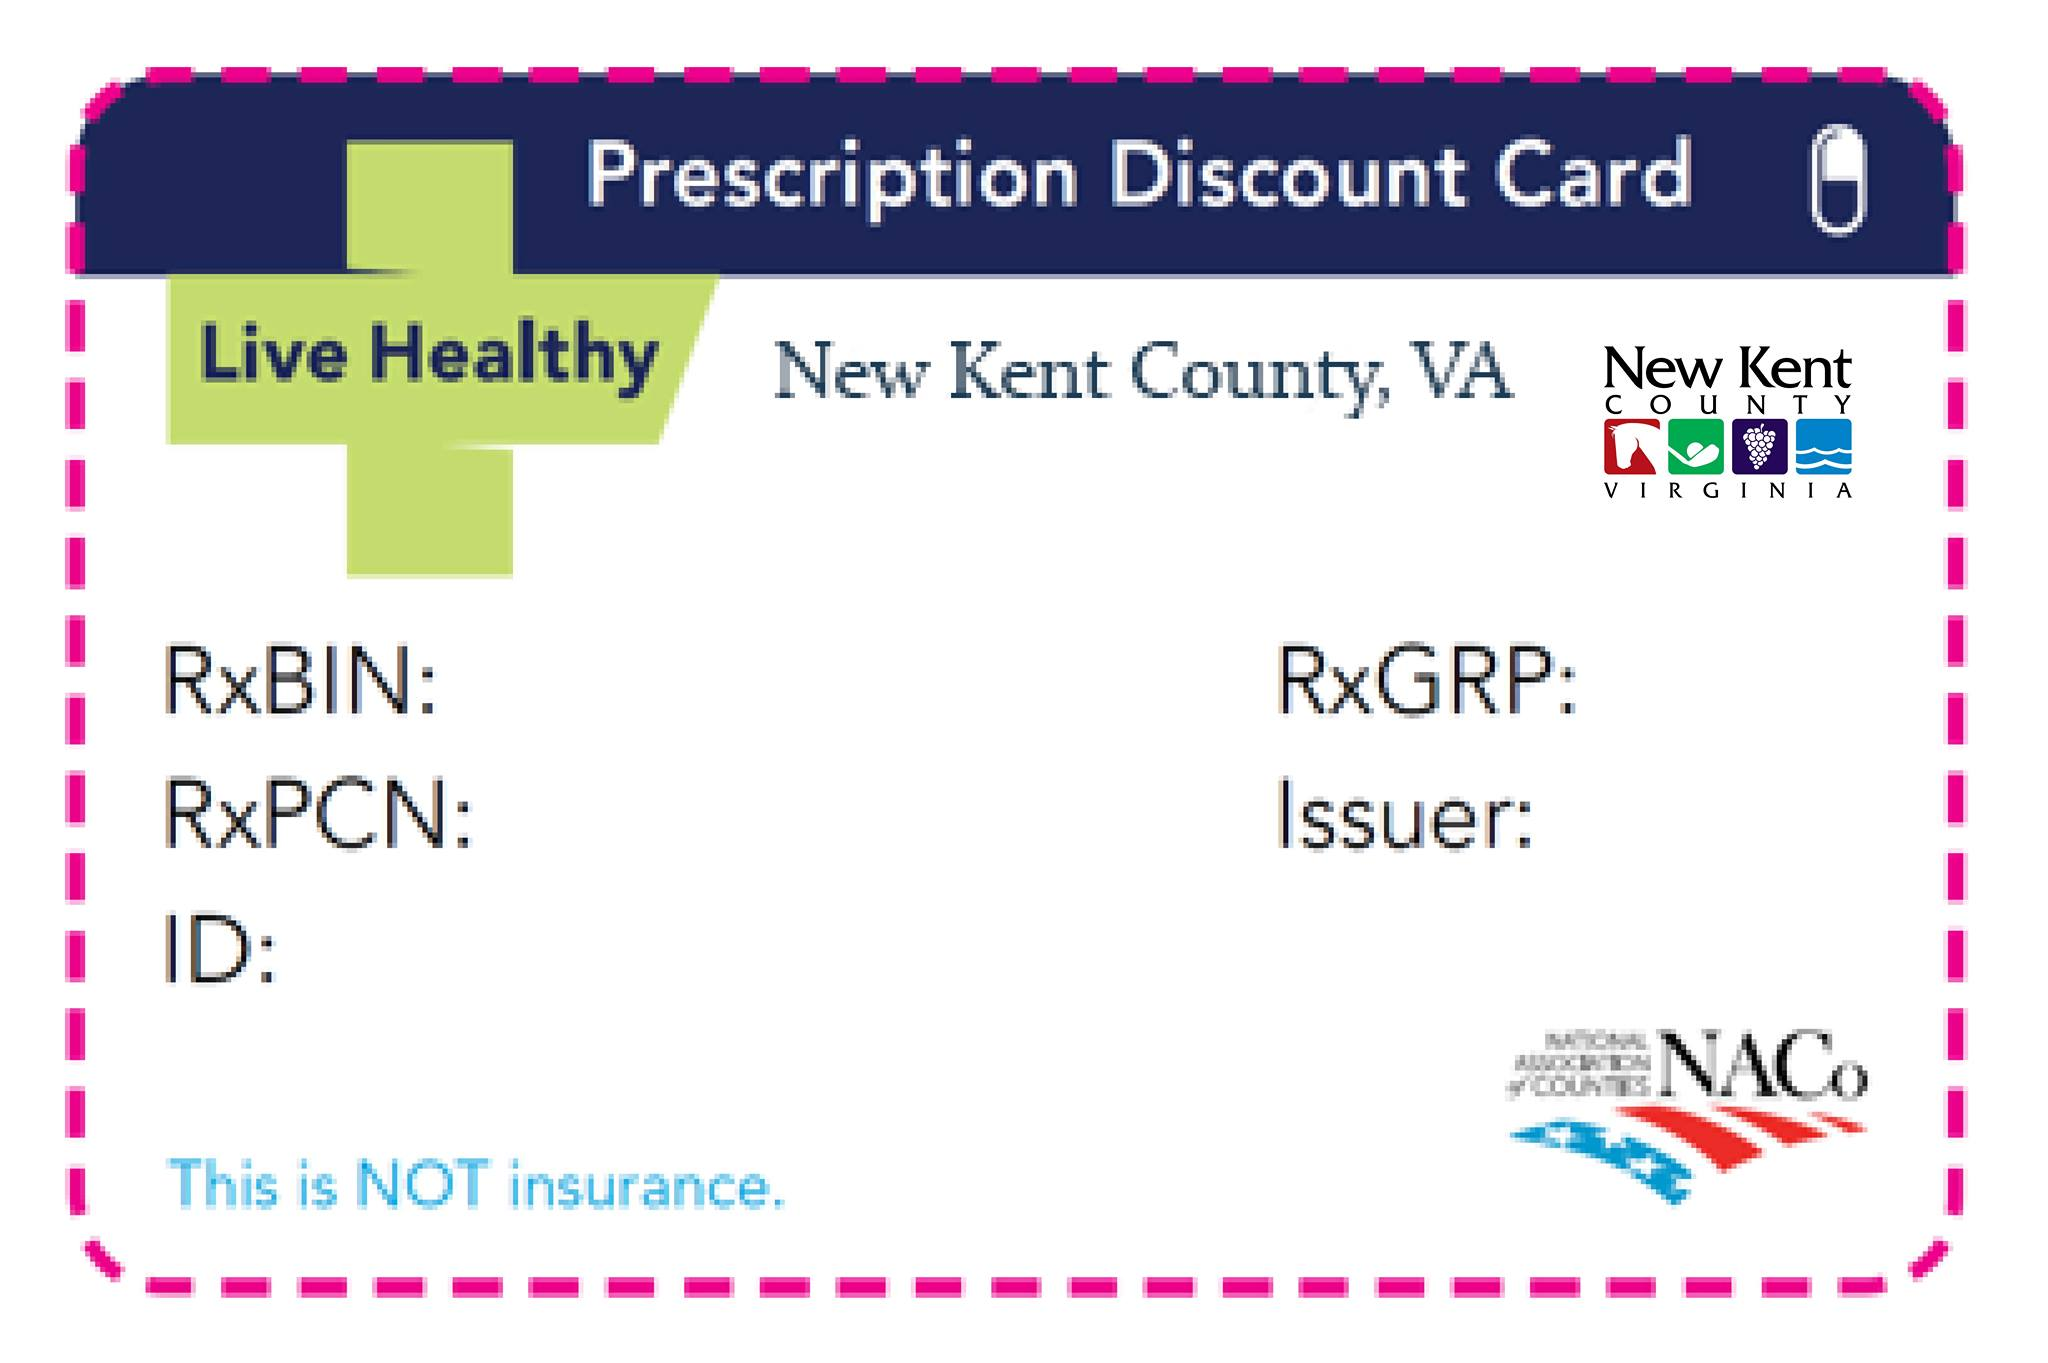 naco prescription card